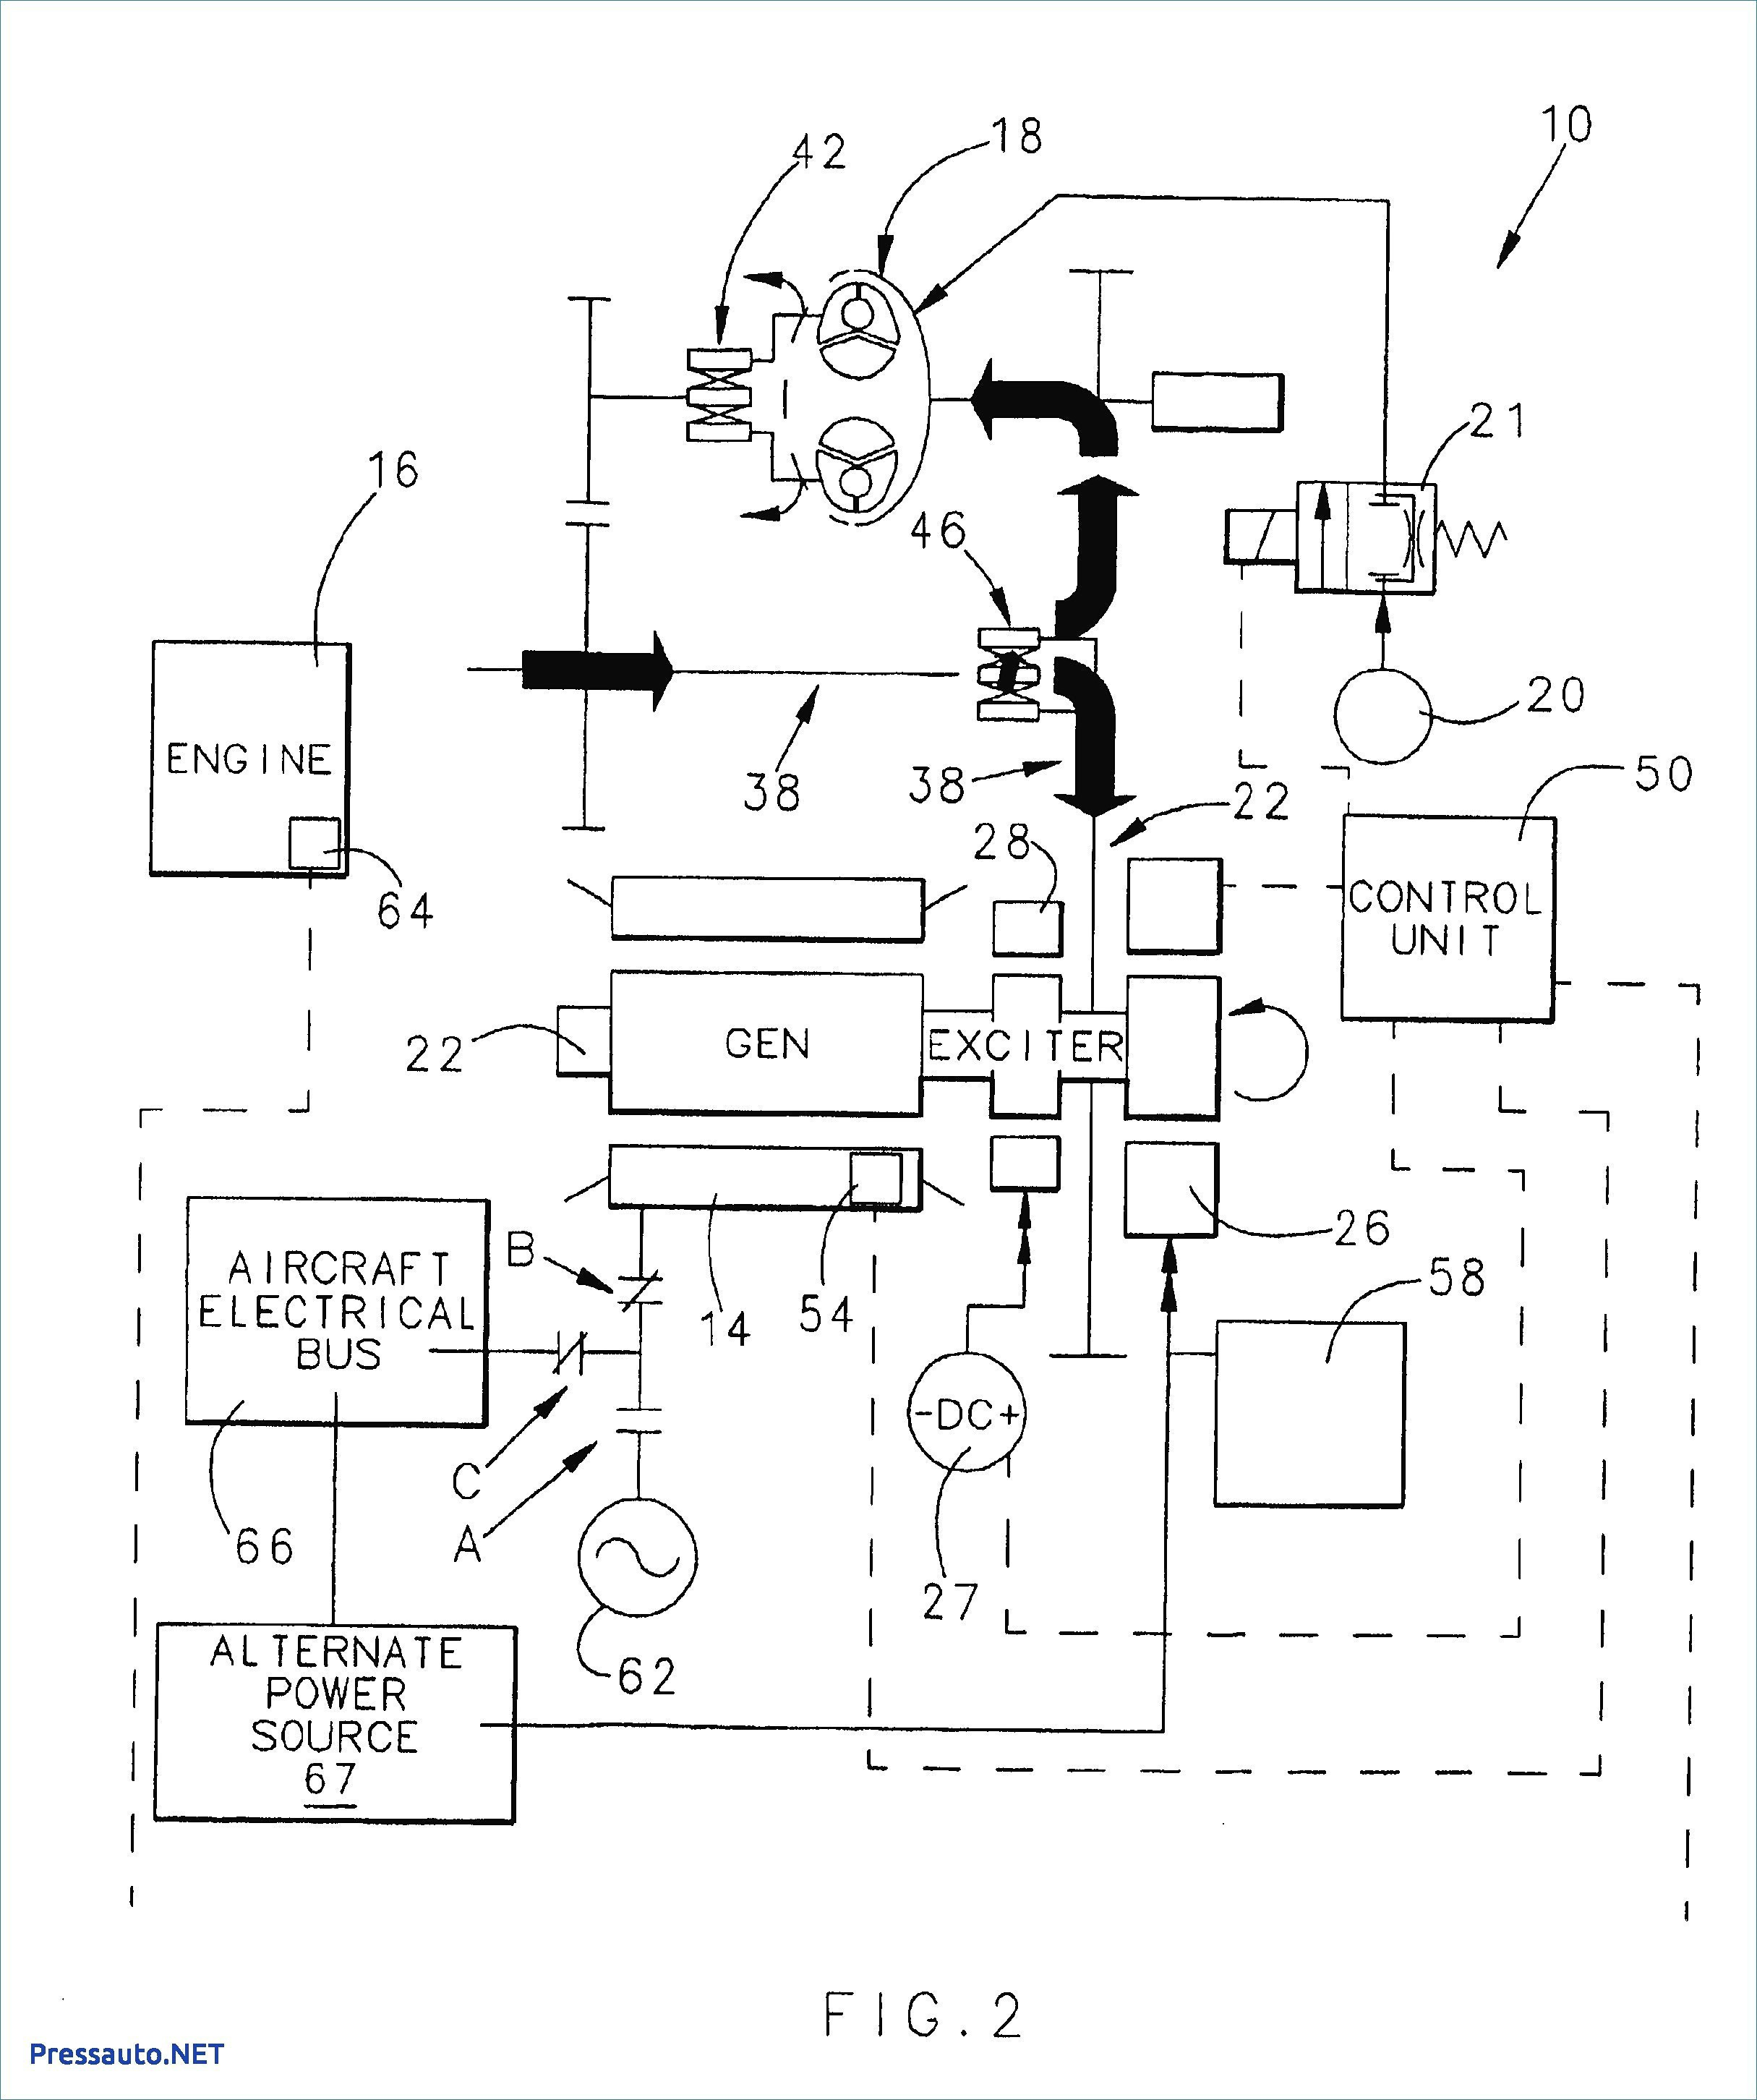 eclipse 3 belt diagram wiring schematic diagram 2002 Mitsubishi Eclipse Wiring Diagrams eclipse 3 belt diagram wiring diagram spring tide diagram eclipse 3 belt diagram